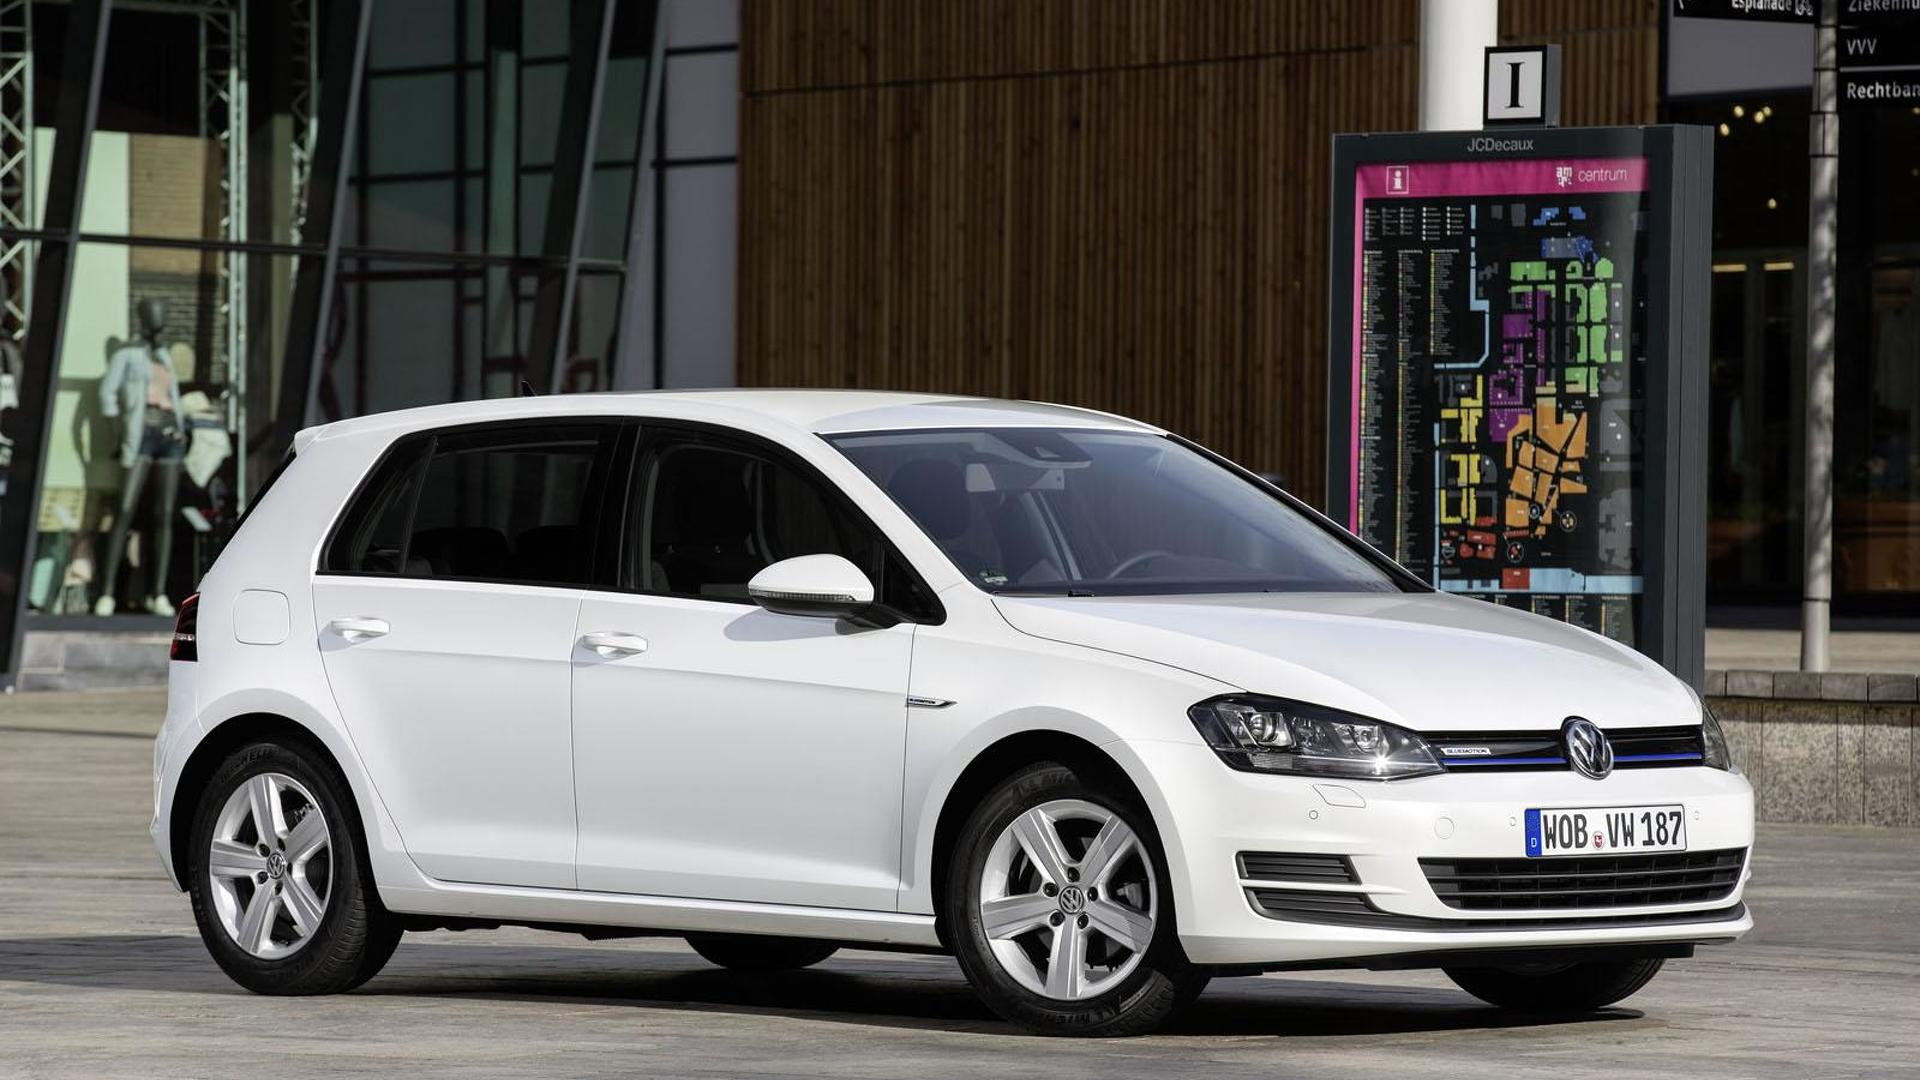 Volkswagen Golf Tsi Bluemotion Unveiled With A 1 0 Liter Engine